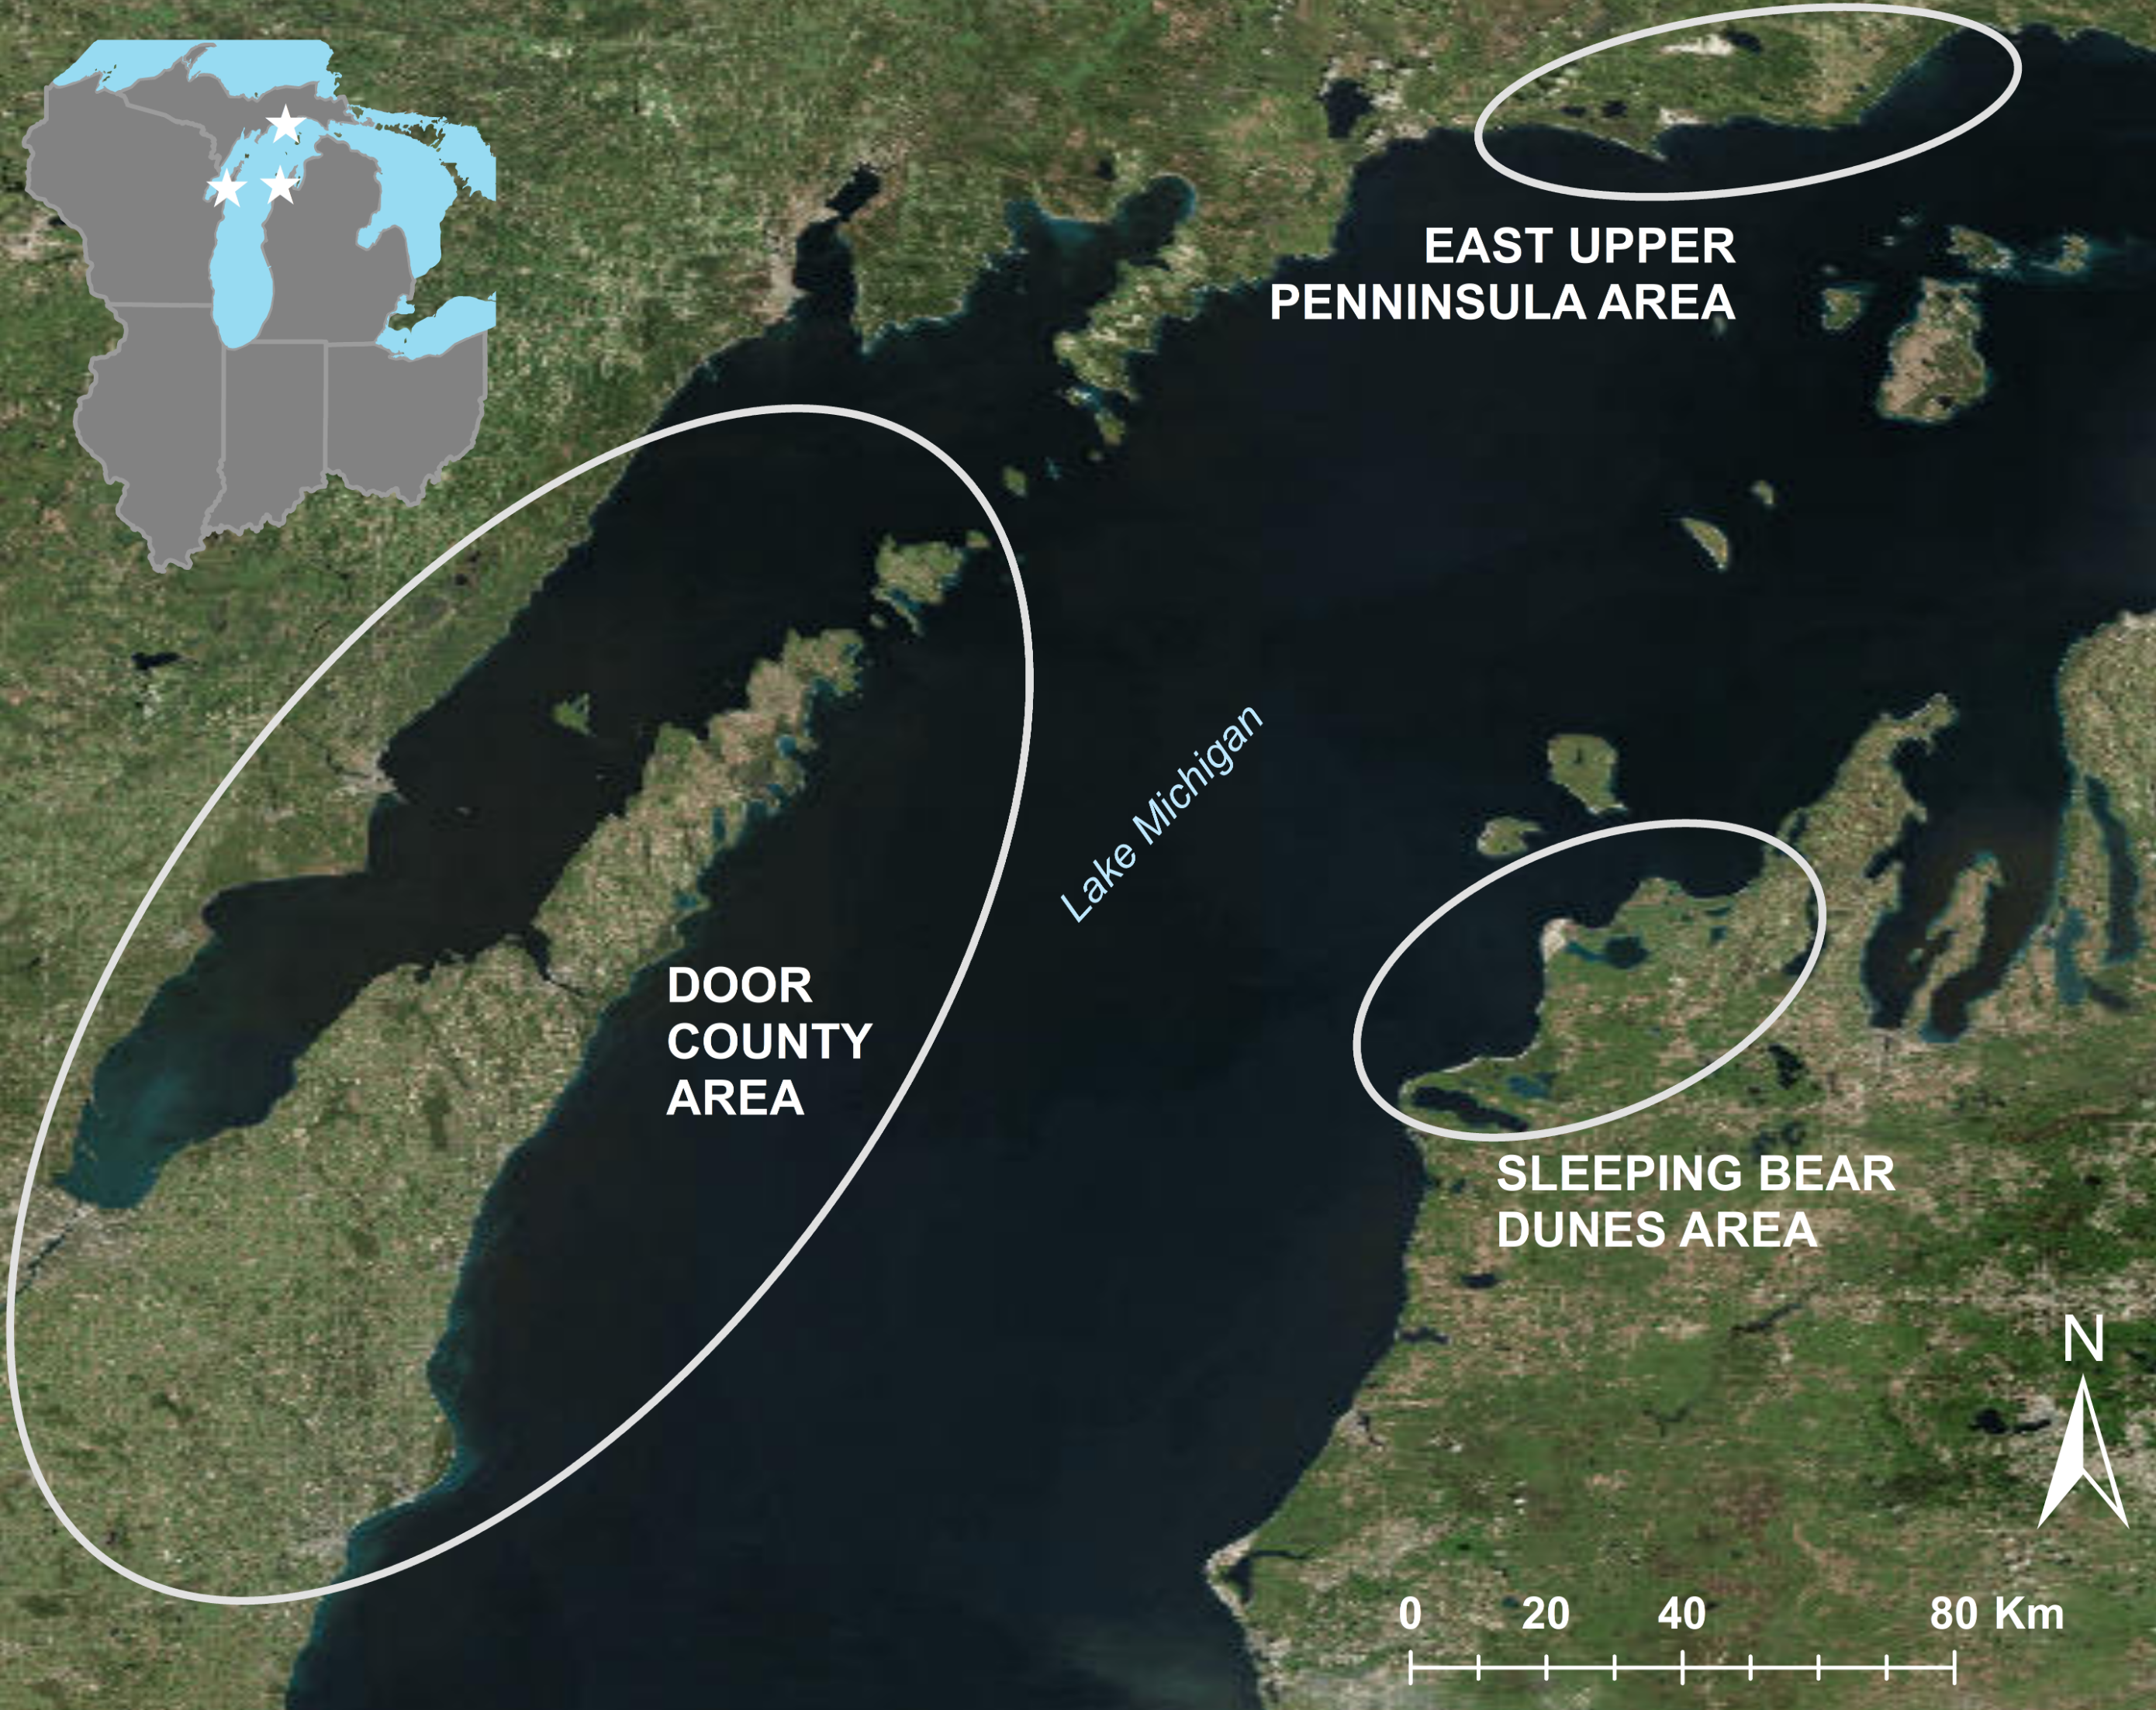 Lake Michigan waterfowl botulism s linked to warm ... on map of racine wi, map of menomonie wi, map of apostle islands wi, map of algoma wi, map of black river falls wi, map of jacksonport wi, map of green bay wi, map of washington island wi, map of city of madison wi, map of castle rock lake wi, map of liberty grove wi, map of ohio by county, map of baileys harbor wi, map of lakewood wi, map of the fox valley wi, map of beloit wi, map of wisconsin, map of peninsula state park wi, map of de soto wi,